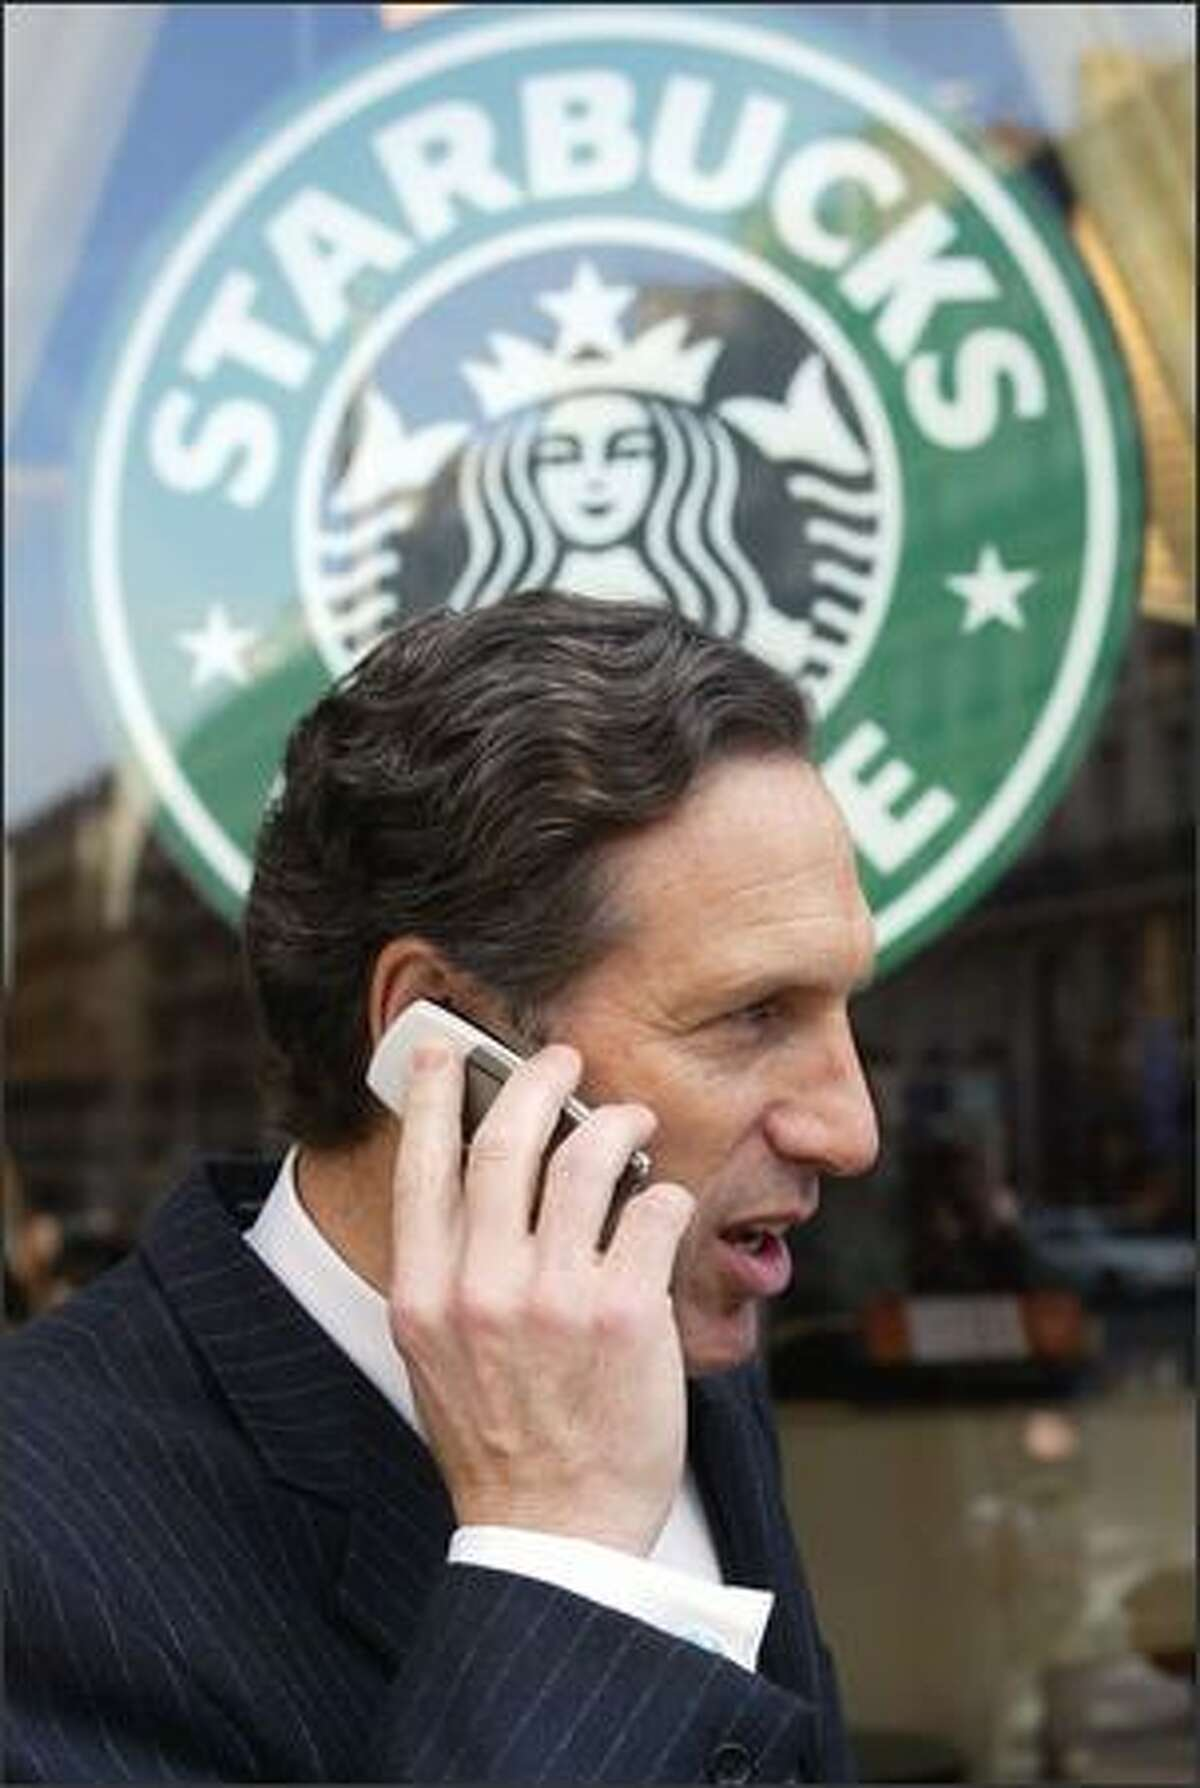 Starbucks chairman Howard Schultz led the state's executives in shareholder-paid perks -- along with $3.57 million in salary and bonuses.